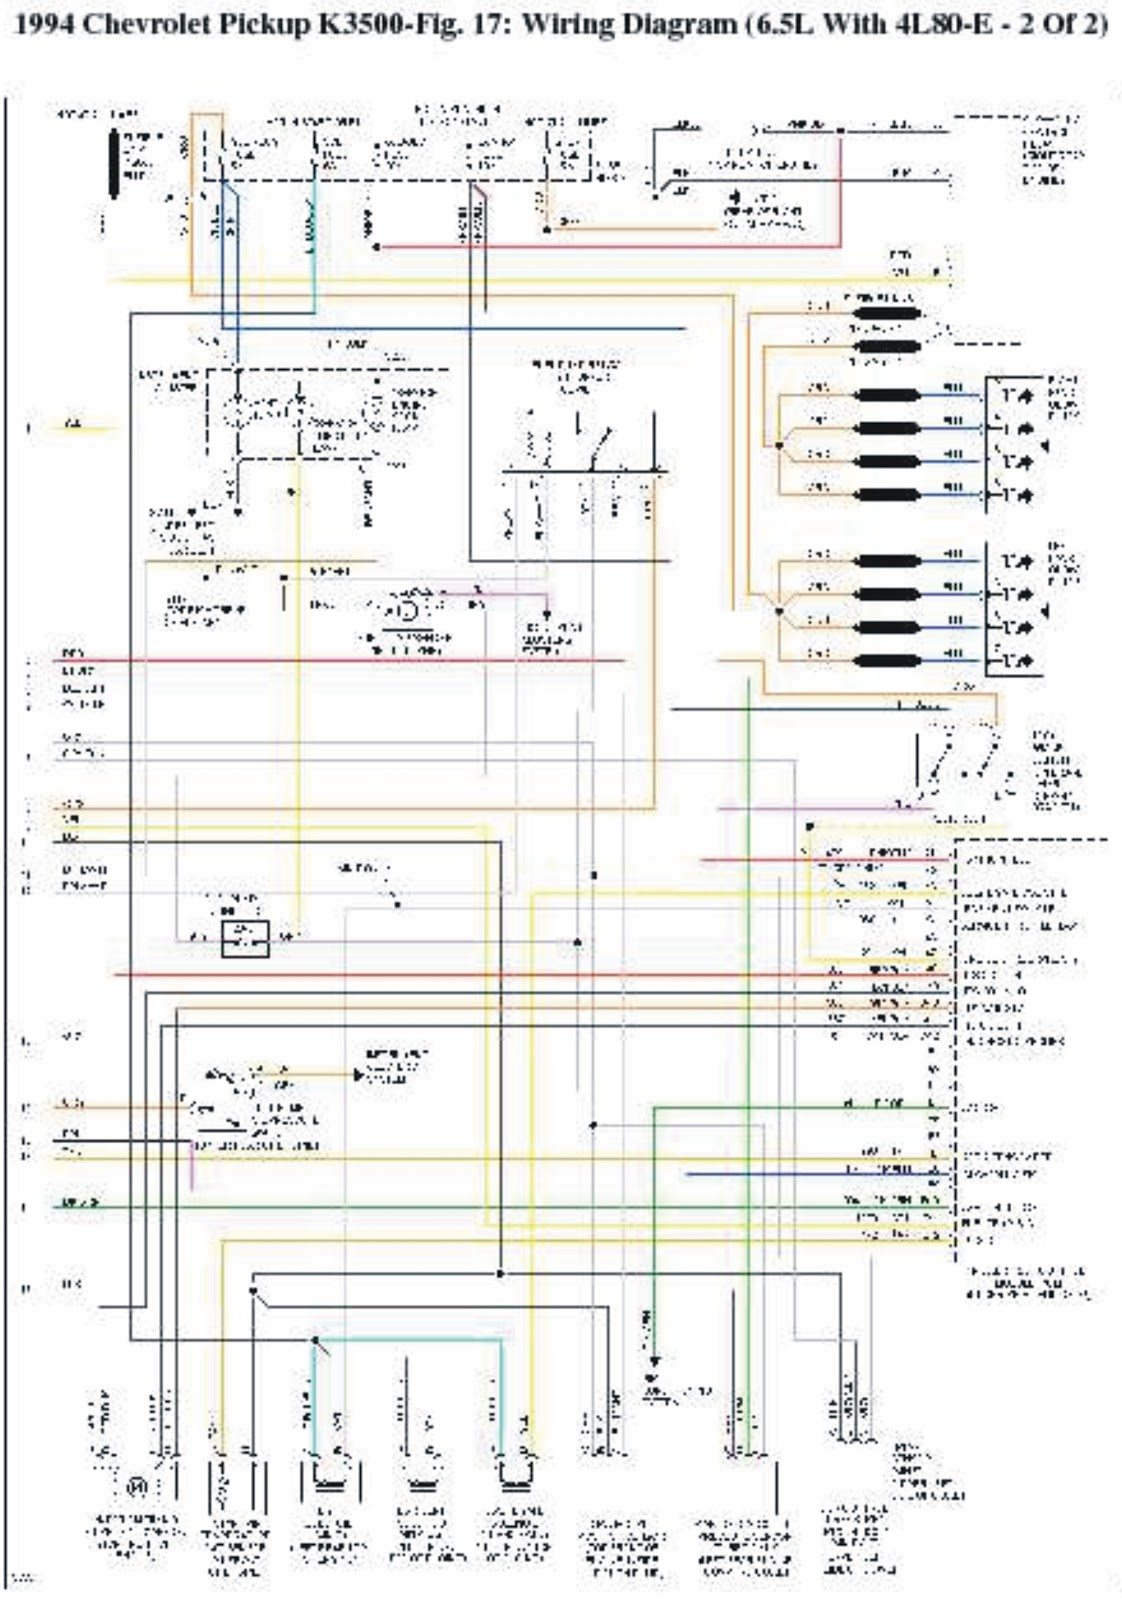 1994+chevrolet+pick+up+K3500%25232 1994 mustang wiring diagram 1994 ford mustang wiring diagram ignition wiring diagram 93 mustang at crackthecode.co